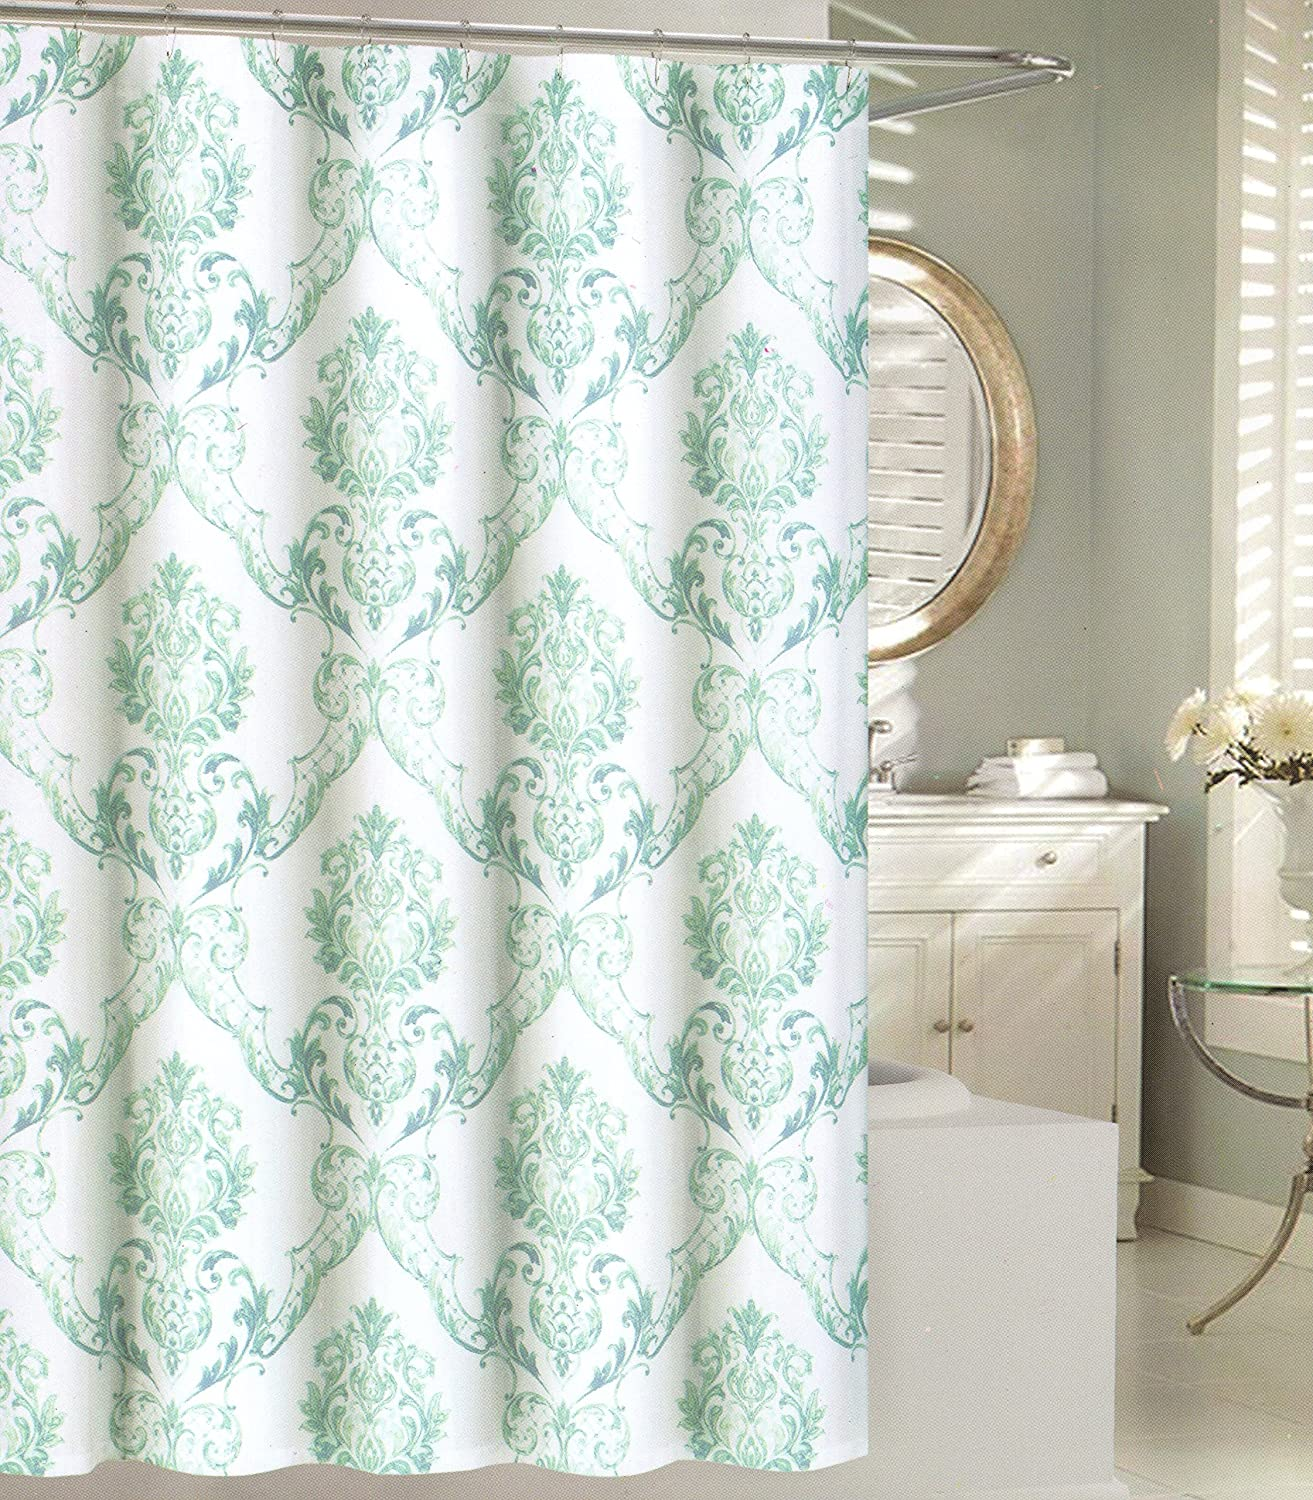 Amazon Tahari Home Fabric Shower Curtain Chinoisserie Damask Paisley Scroll Medallion Turquoise Aqua SPA Blue On White 72 X Kitchen